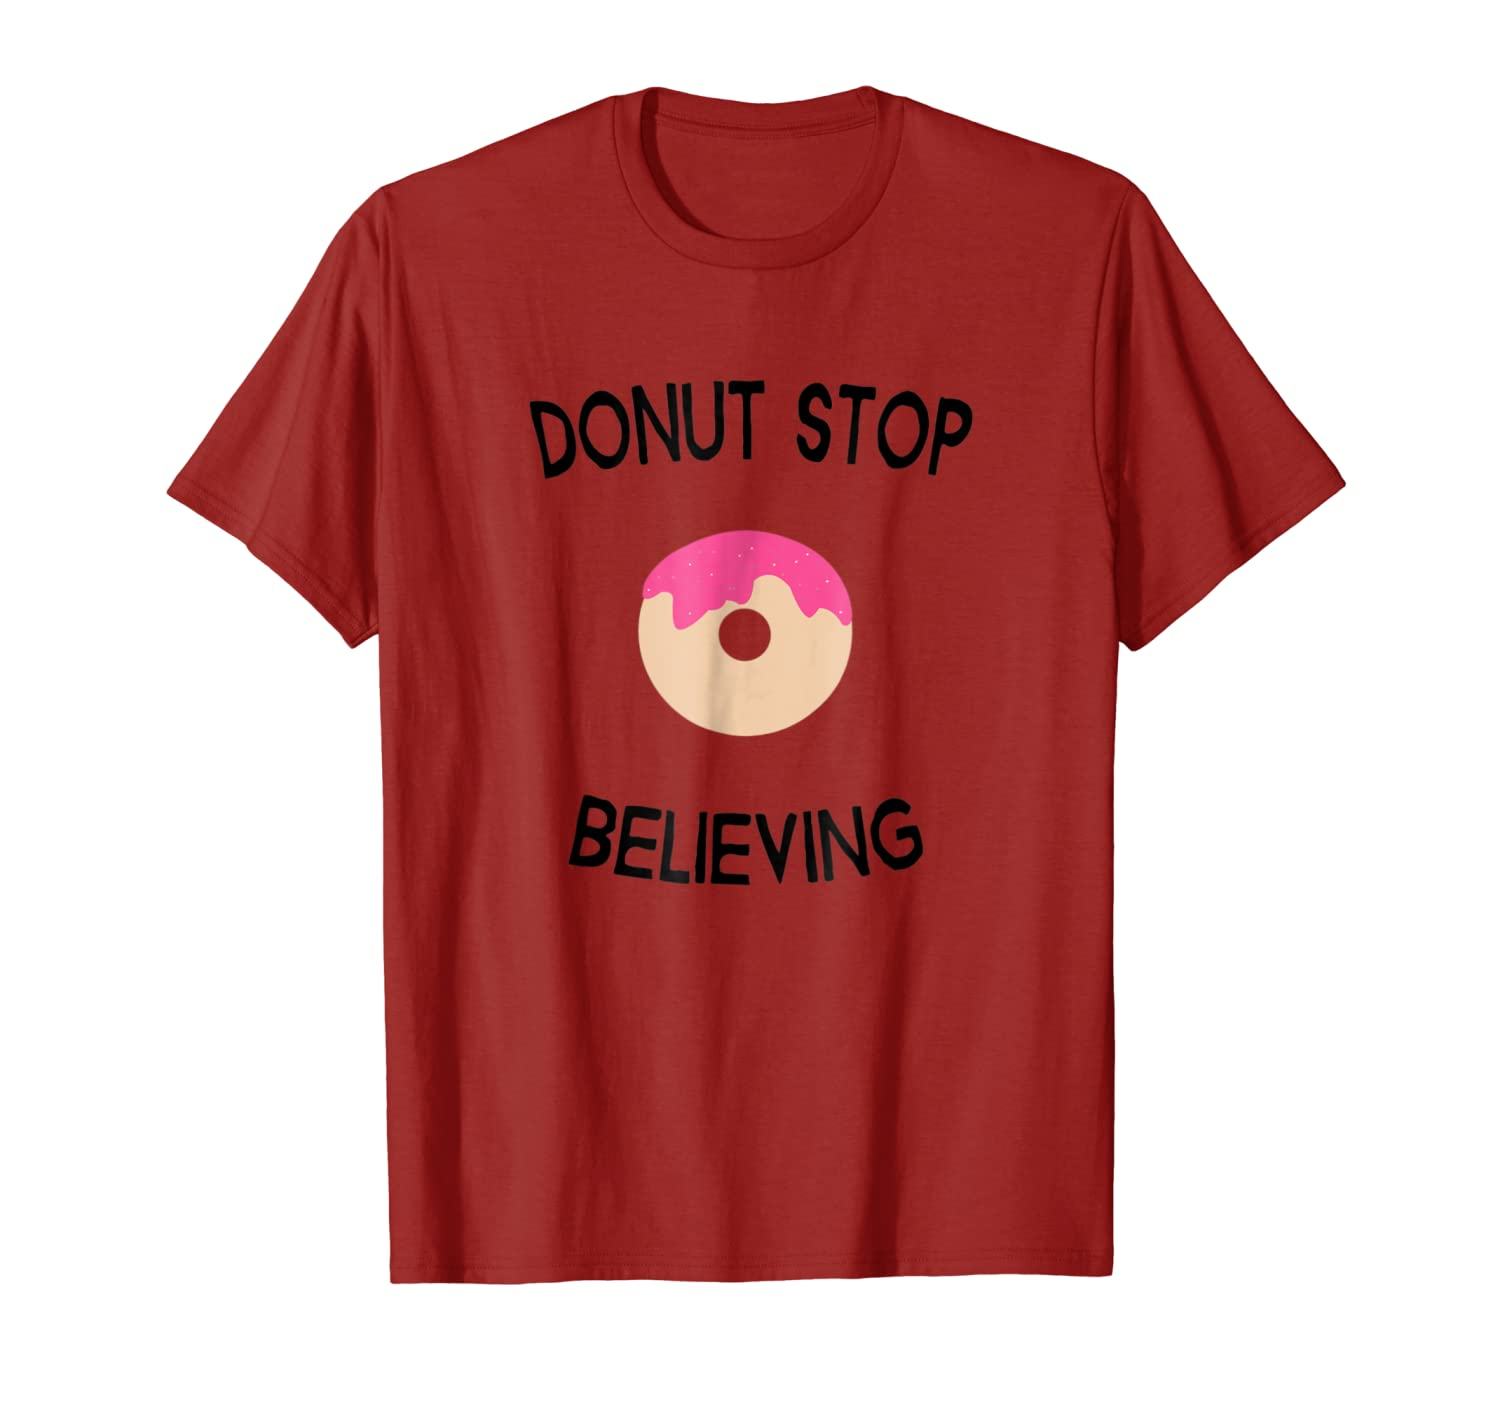 92af975f8dc2 Amazon.com: Donut Stop Believing Funny T-shirt: Clothing